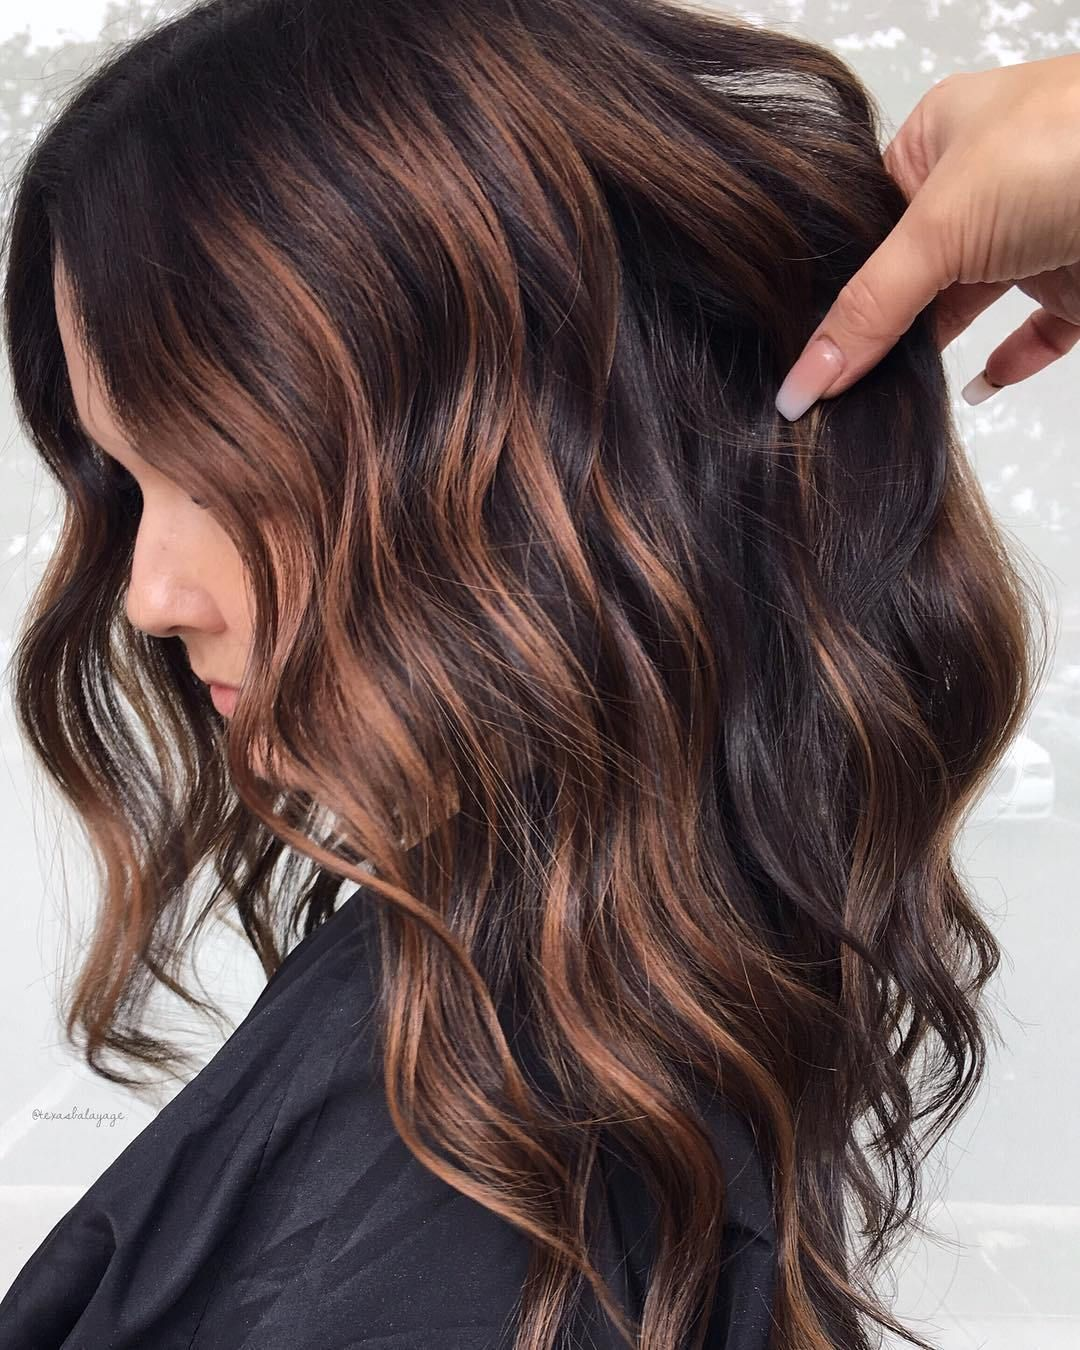 60 Looks with Caramel Highlights on Brown and Dark